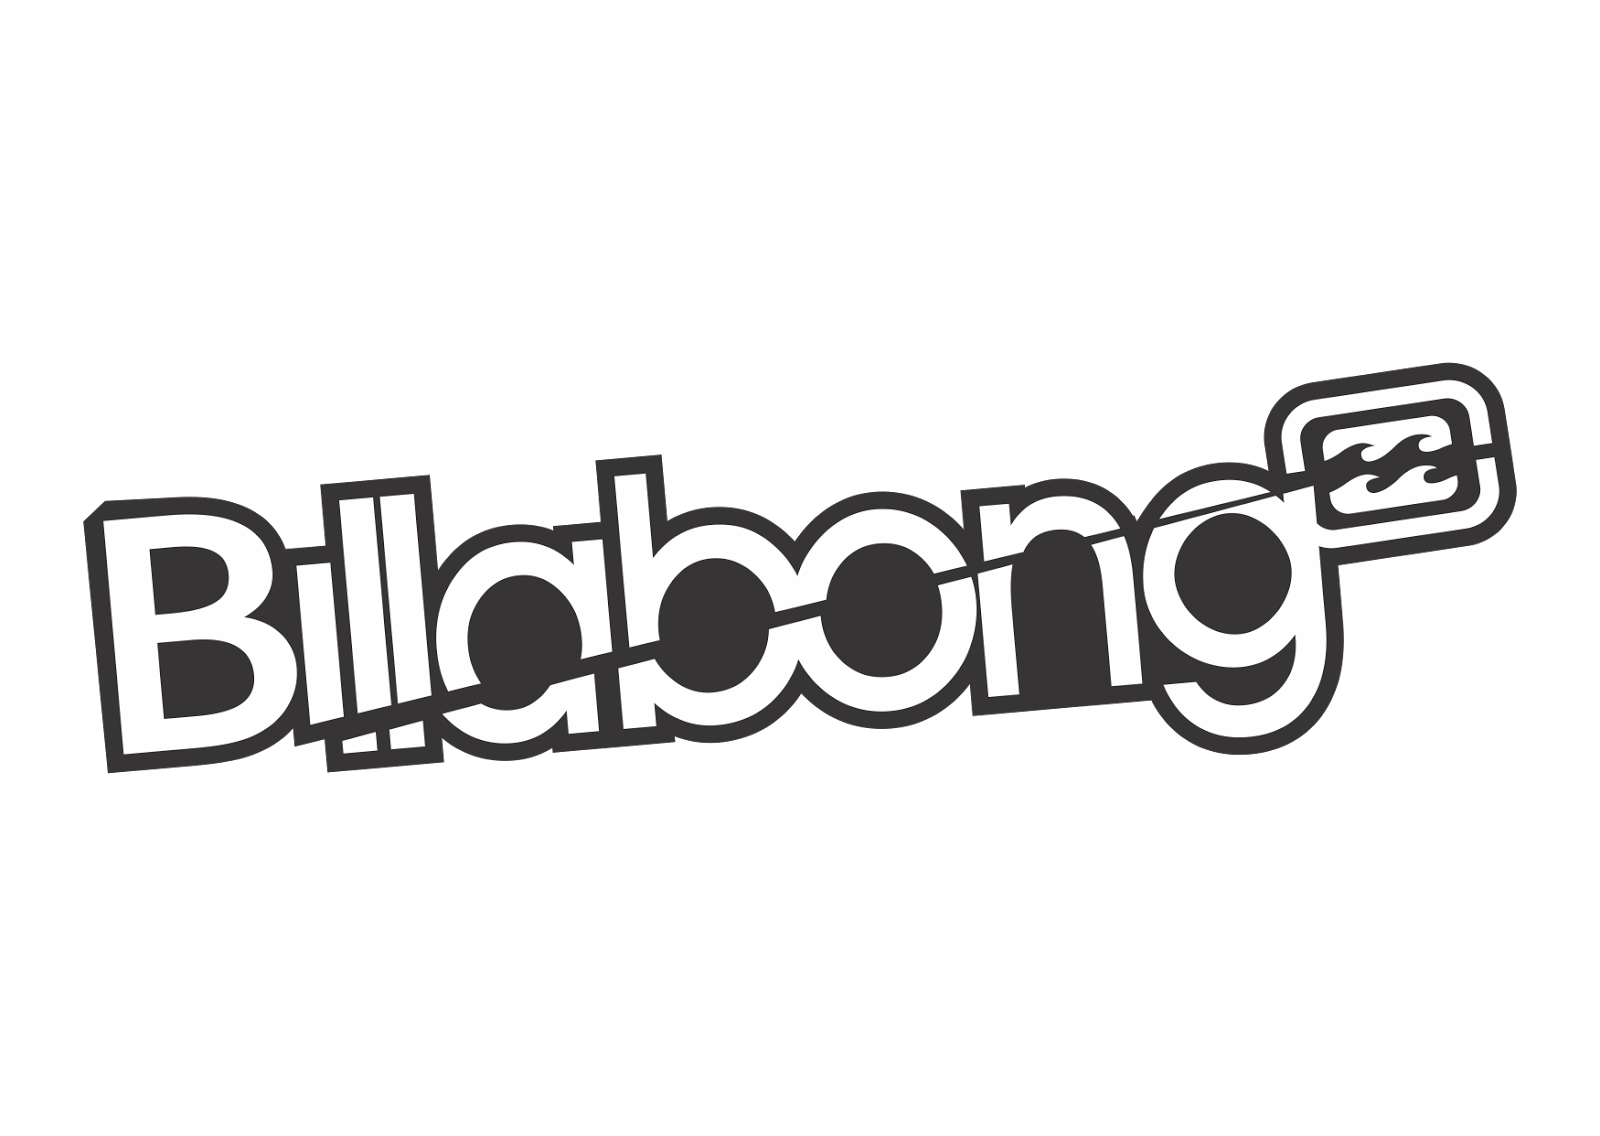 logo billabong